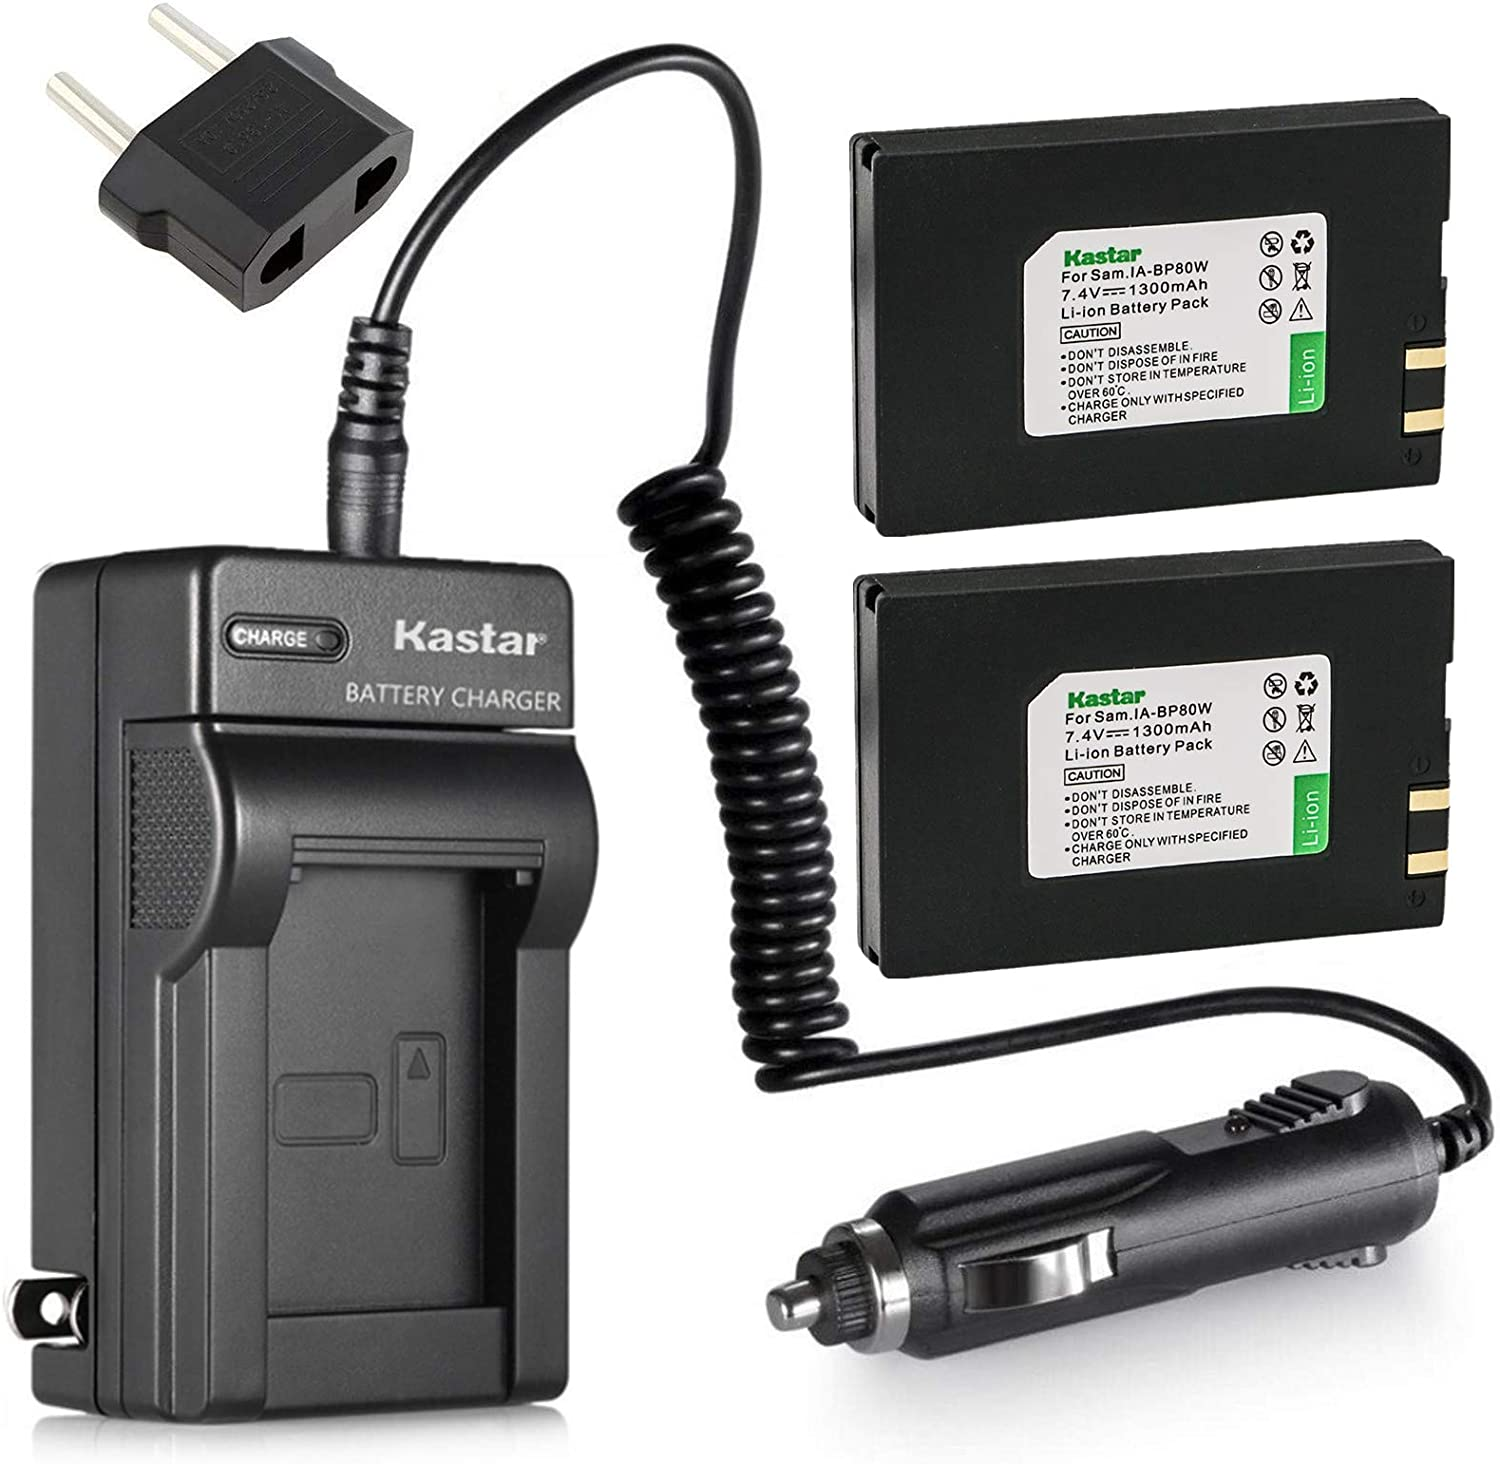 AC Charger Replacement for Samsung IA-BP80W IA-BP80WA and Samsung VP-D385 VP-D391 VP-D3910 VP-D392 VP-D395 VP-DX105 VP-DX200 VP-DX205 VP-DX2050 VP-DX210 SC-D381 SC-D382 SC-D383 Kastar 2-Pack Battery